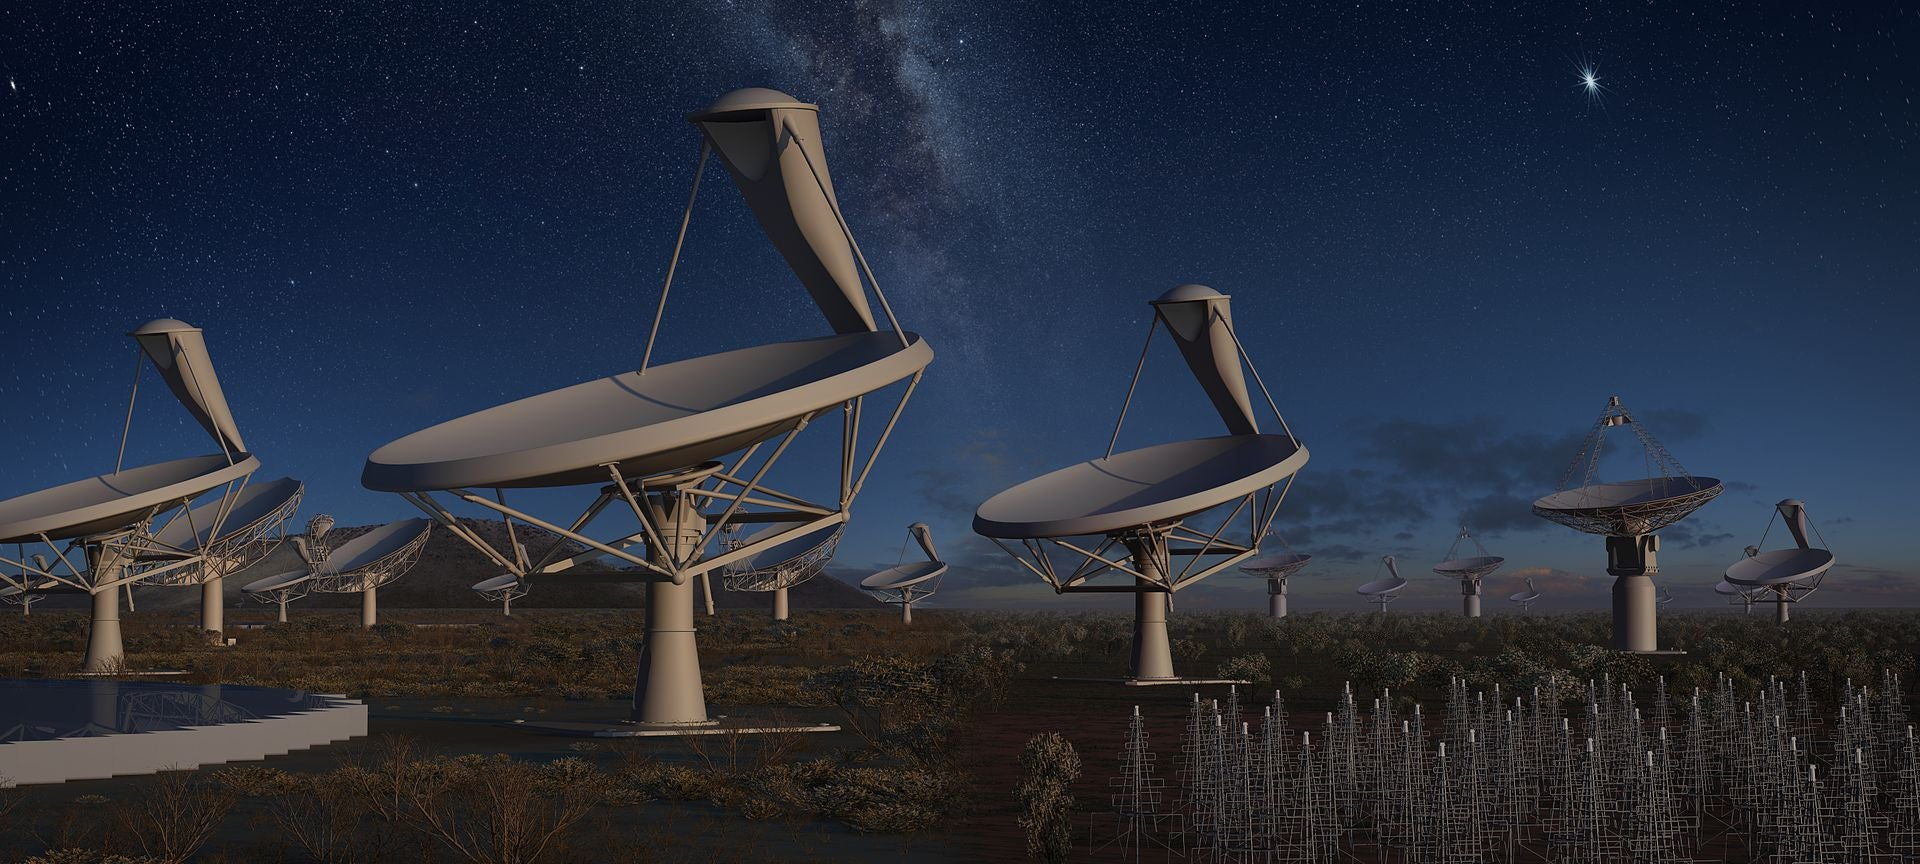 SETI: Snowden Should Stick to Human Affairs and Let Us Figure out How to Find Aliens